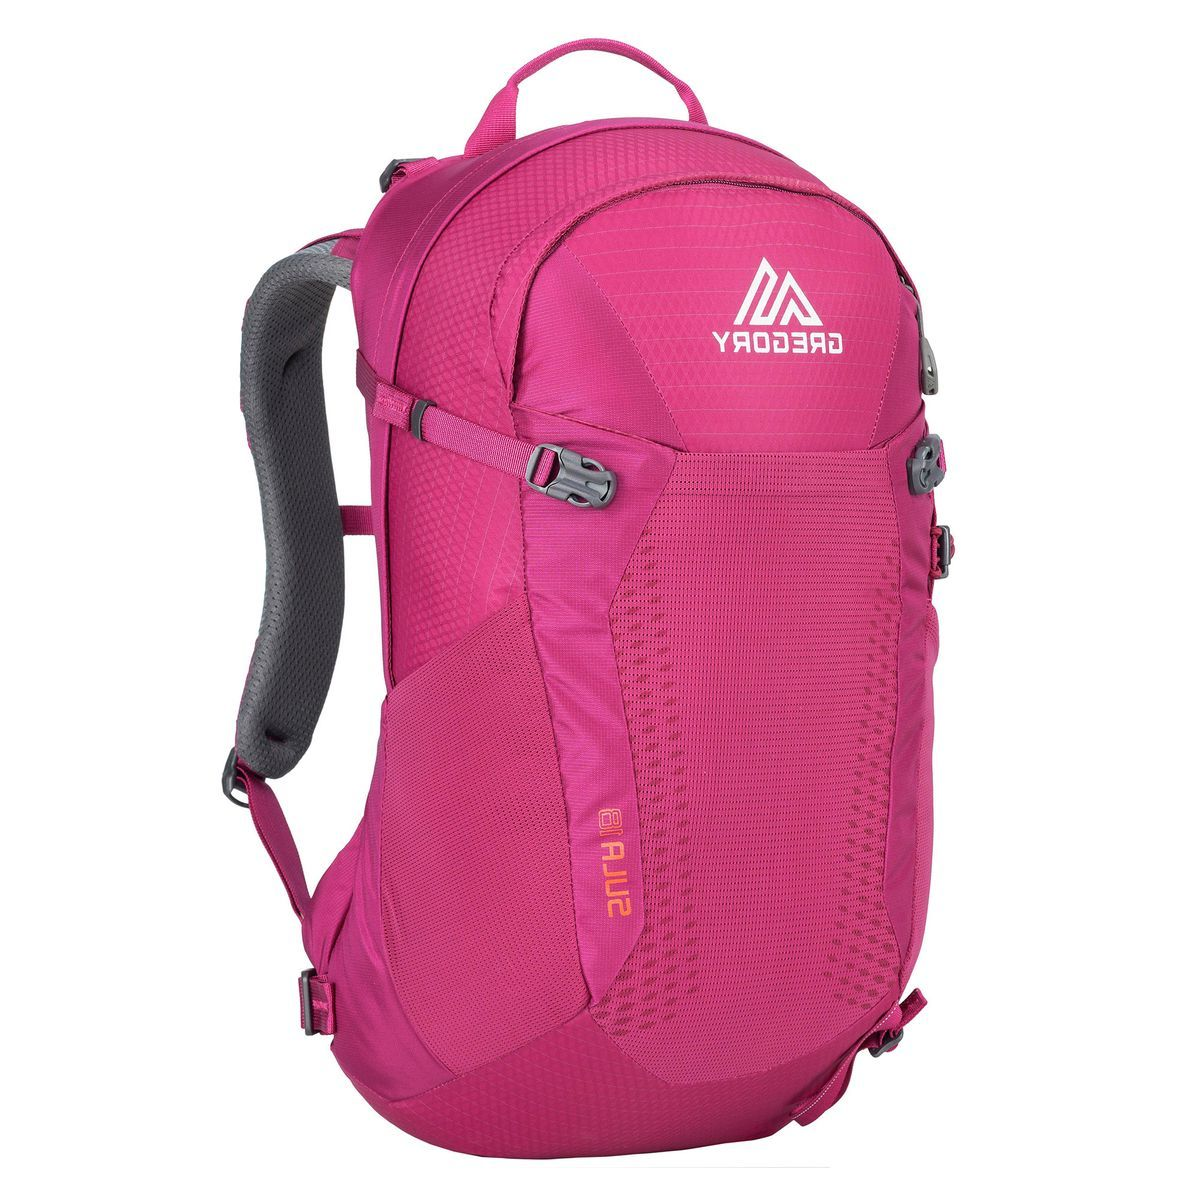 Gregory Sula 18L Backpack - Women's